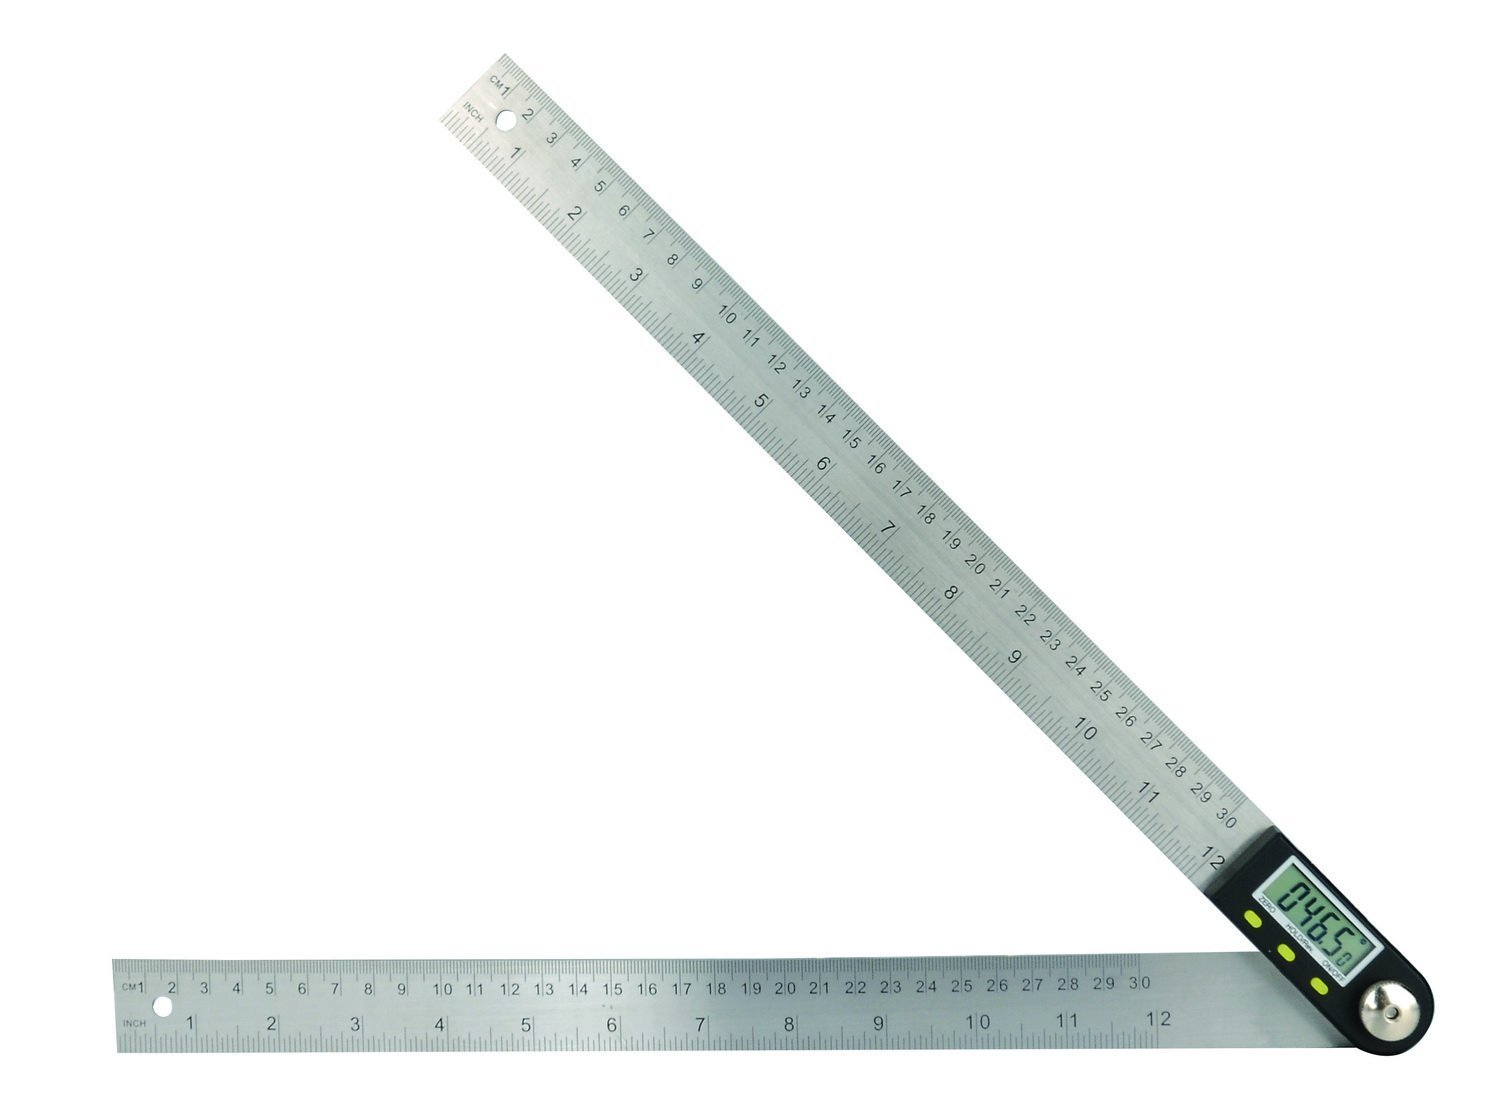 Saili 12 Inches Stainless Steel Digital Angle Ruler Goniometer angle Finder Ruler angle Ruler Definition ruler Angle